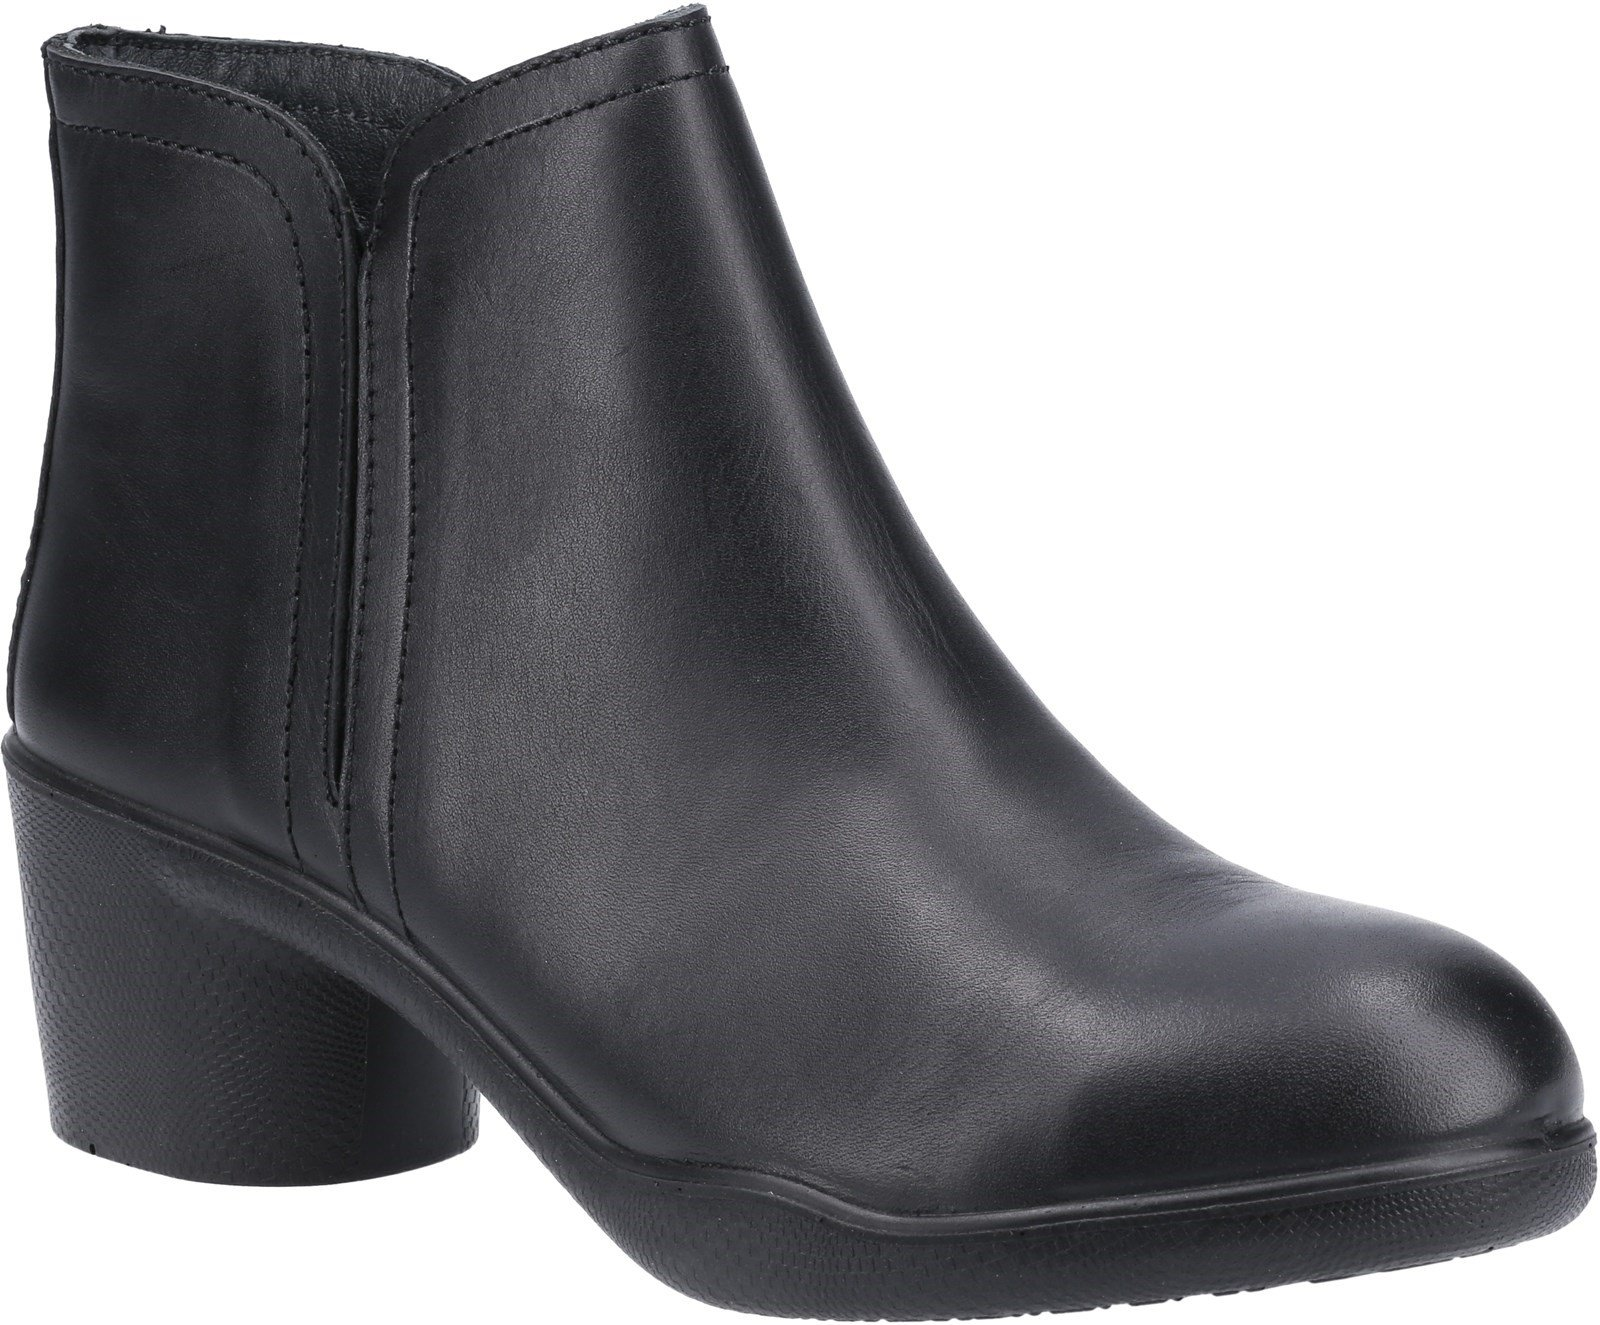 Amblers Safety Women's Tina Safety Ankle Boot Black 31491 - Black 8